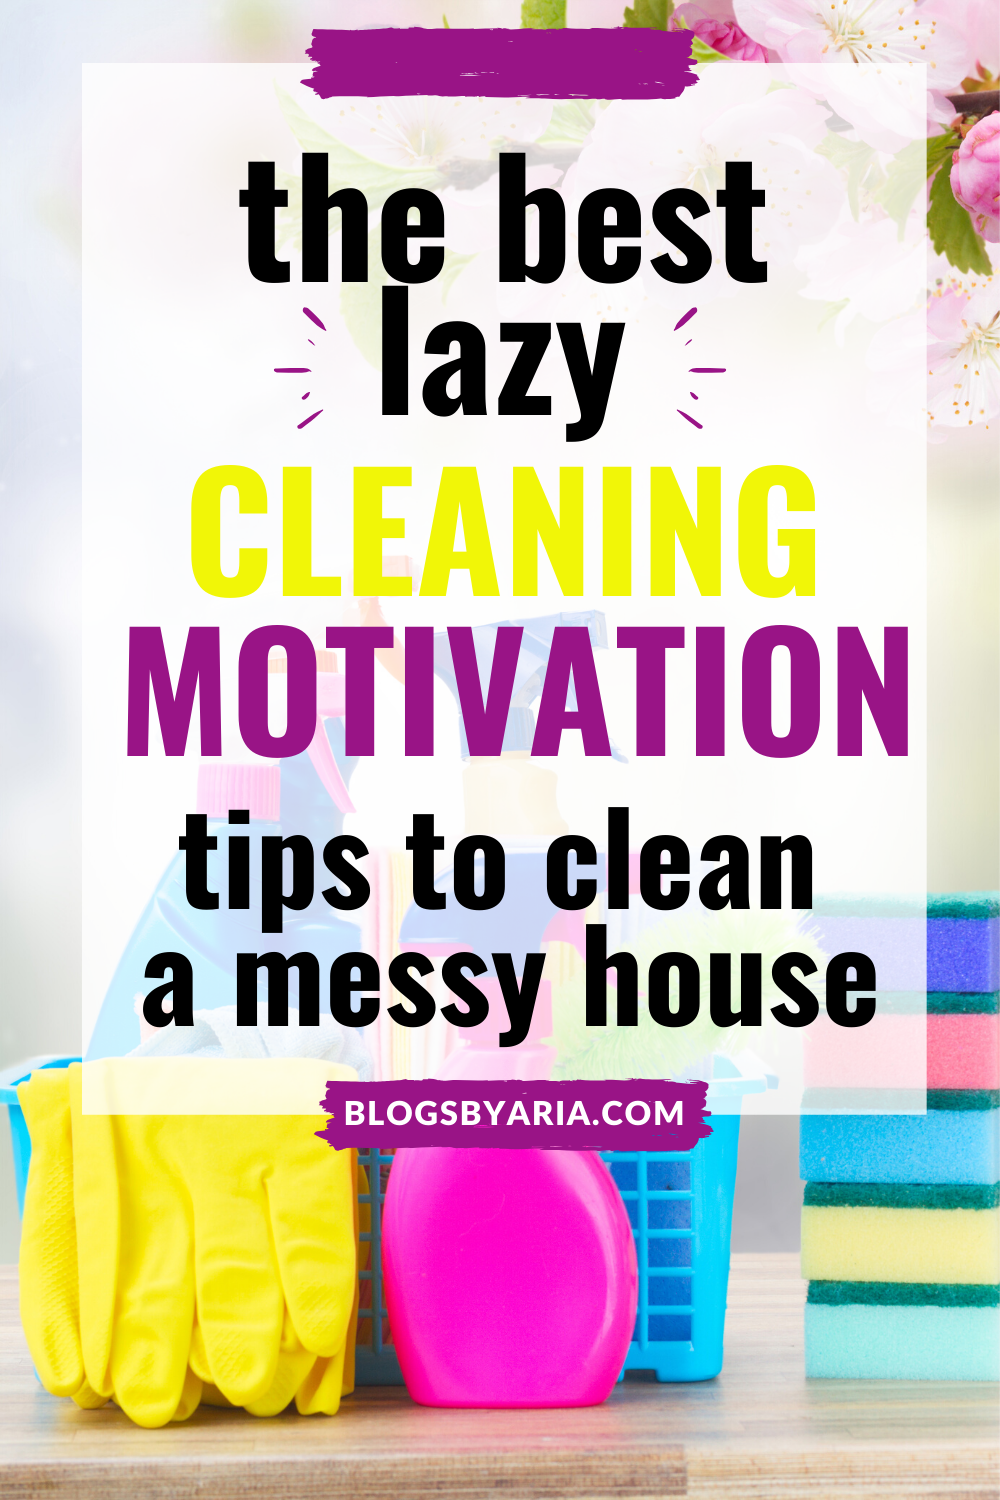 tips to clean a messy house